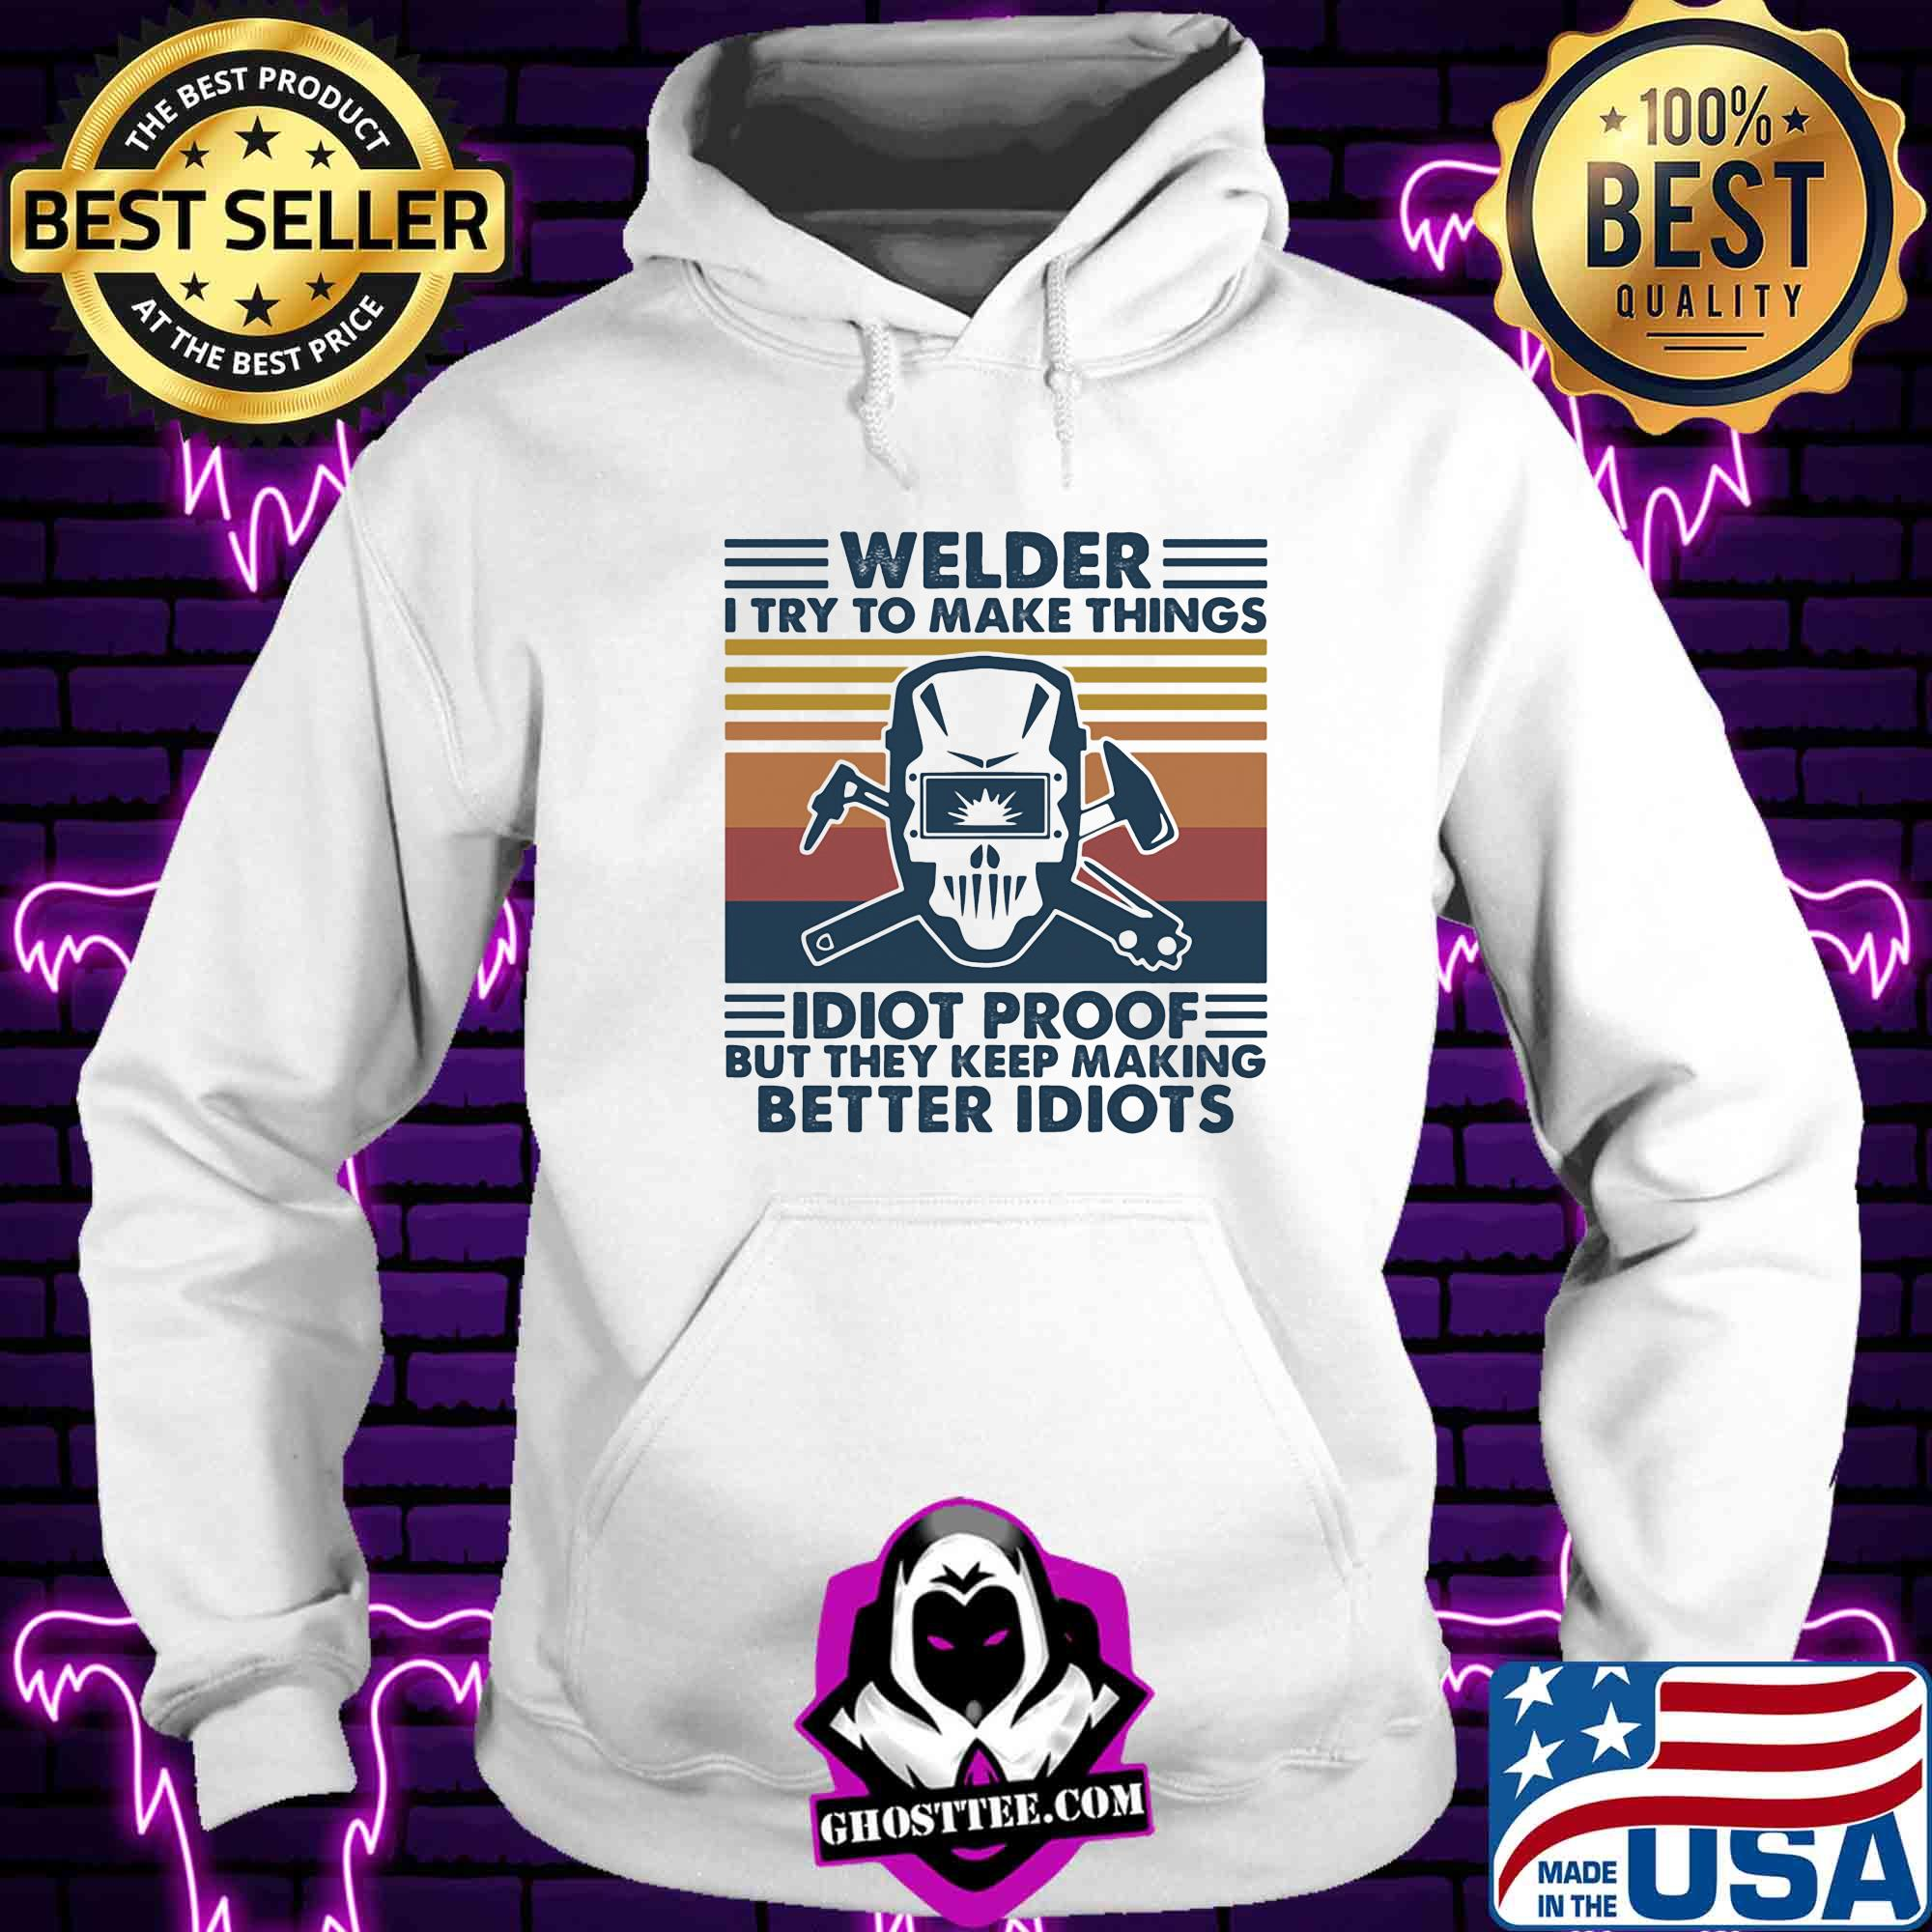 Welder I Try To Make Things Idiot Proof But They Keep Making Better Idiots Vintage Retro Shirt Hoodie Sweater Longsleeve T Shirt